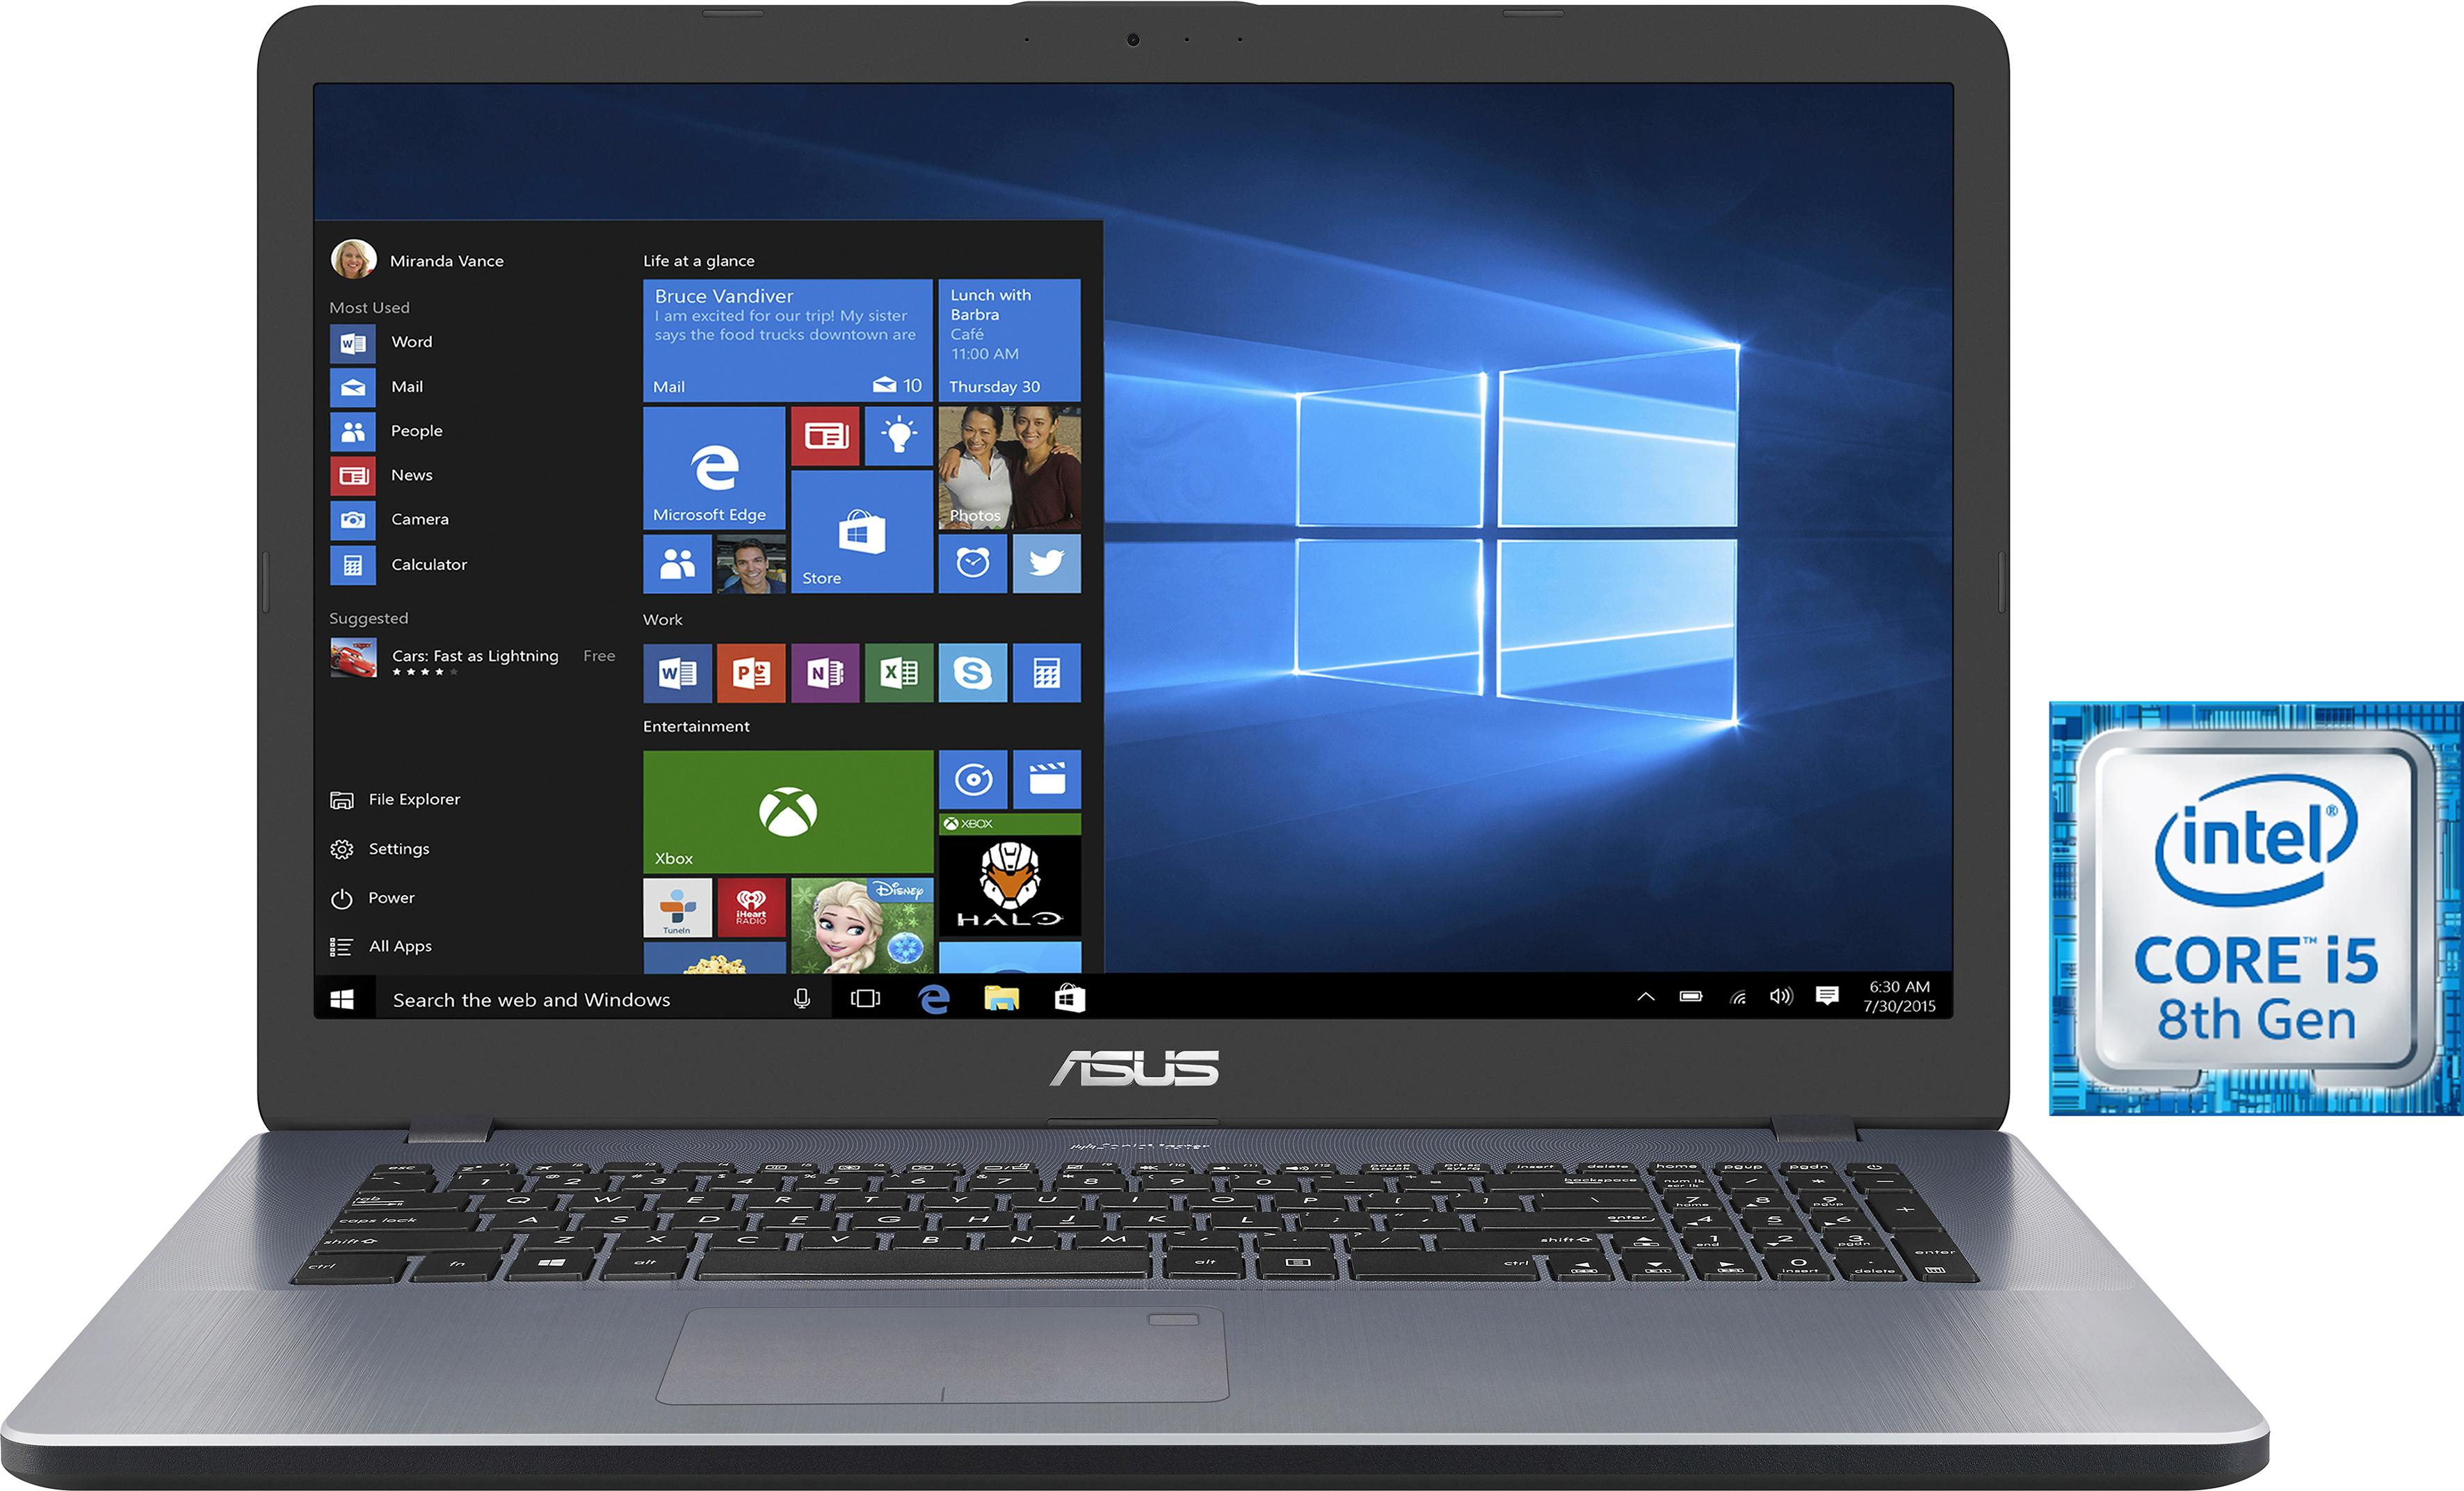 Asus N705UD-GC231T Notebook (43,94 cm / 17,3 Zoll, Intel, Core i5, 1000 GB HDD, 512 GB SSD)